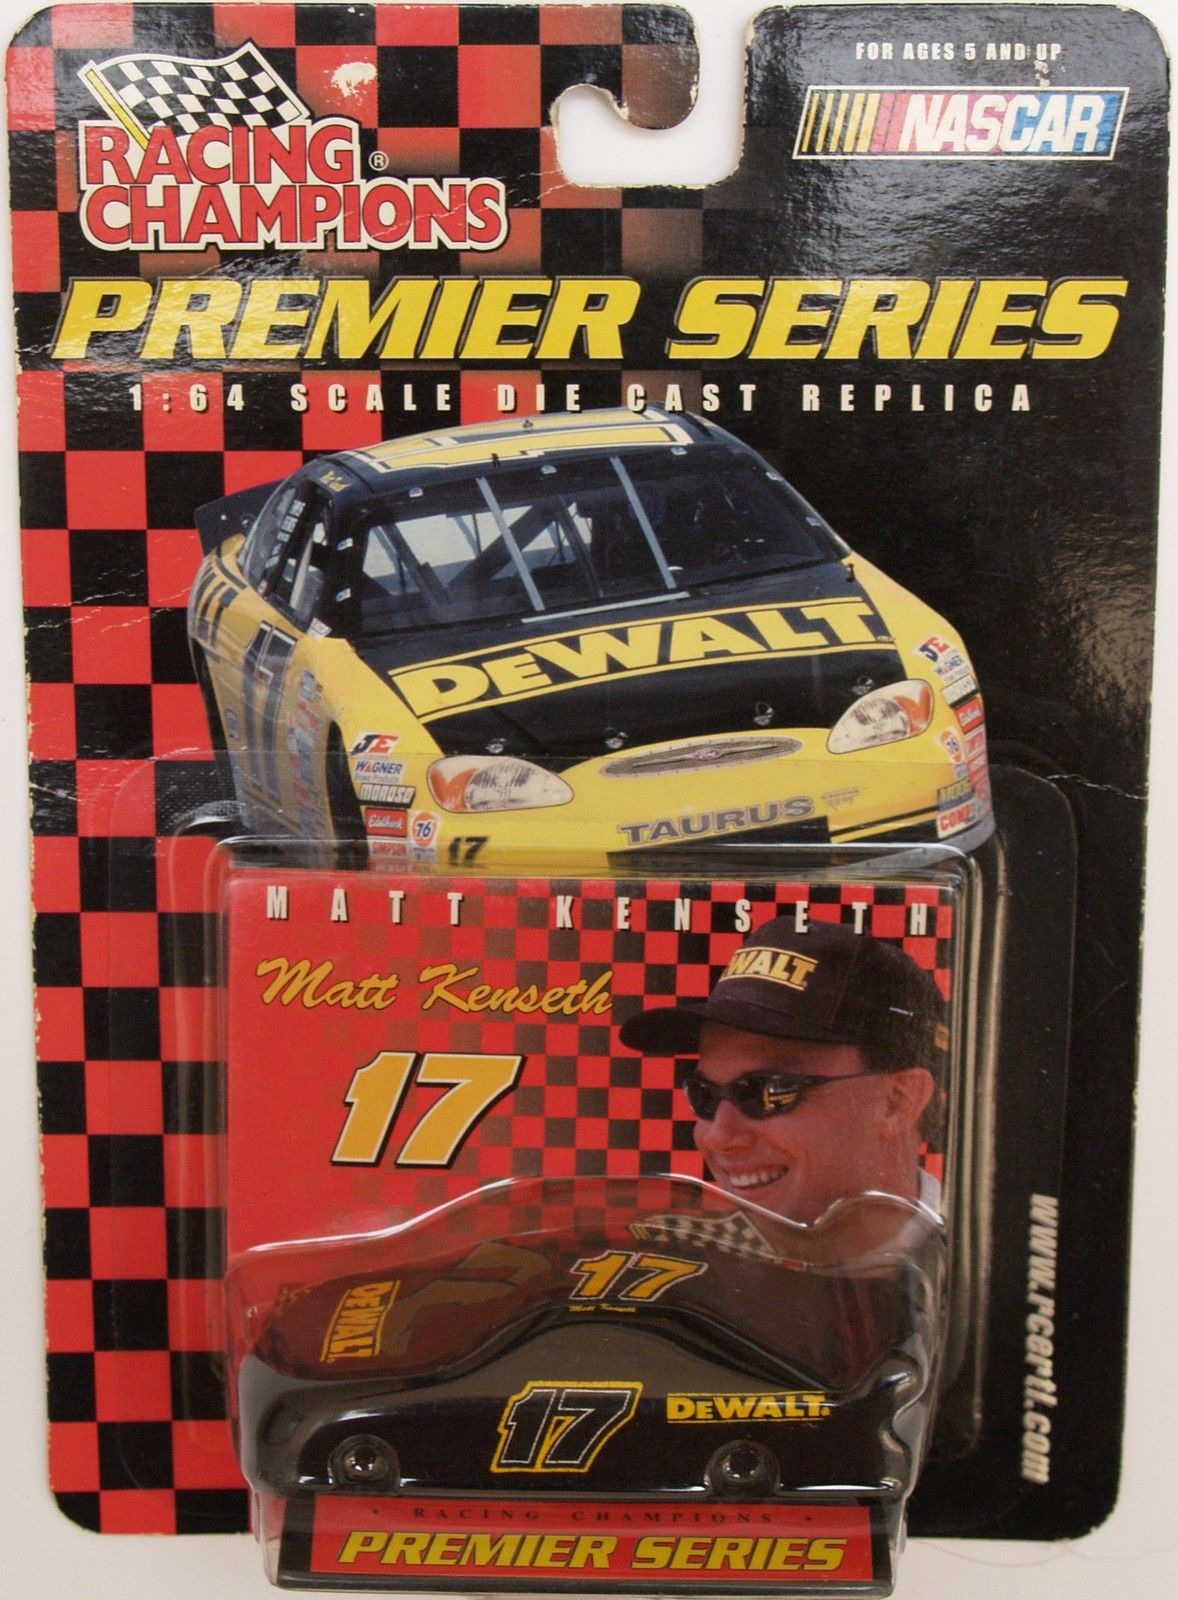 2000 RACING CHAMPIONS - PREMIER SERIES - #17 MATT KENSETH